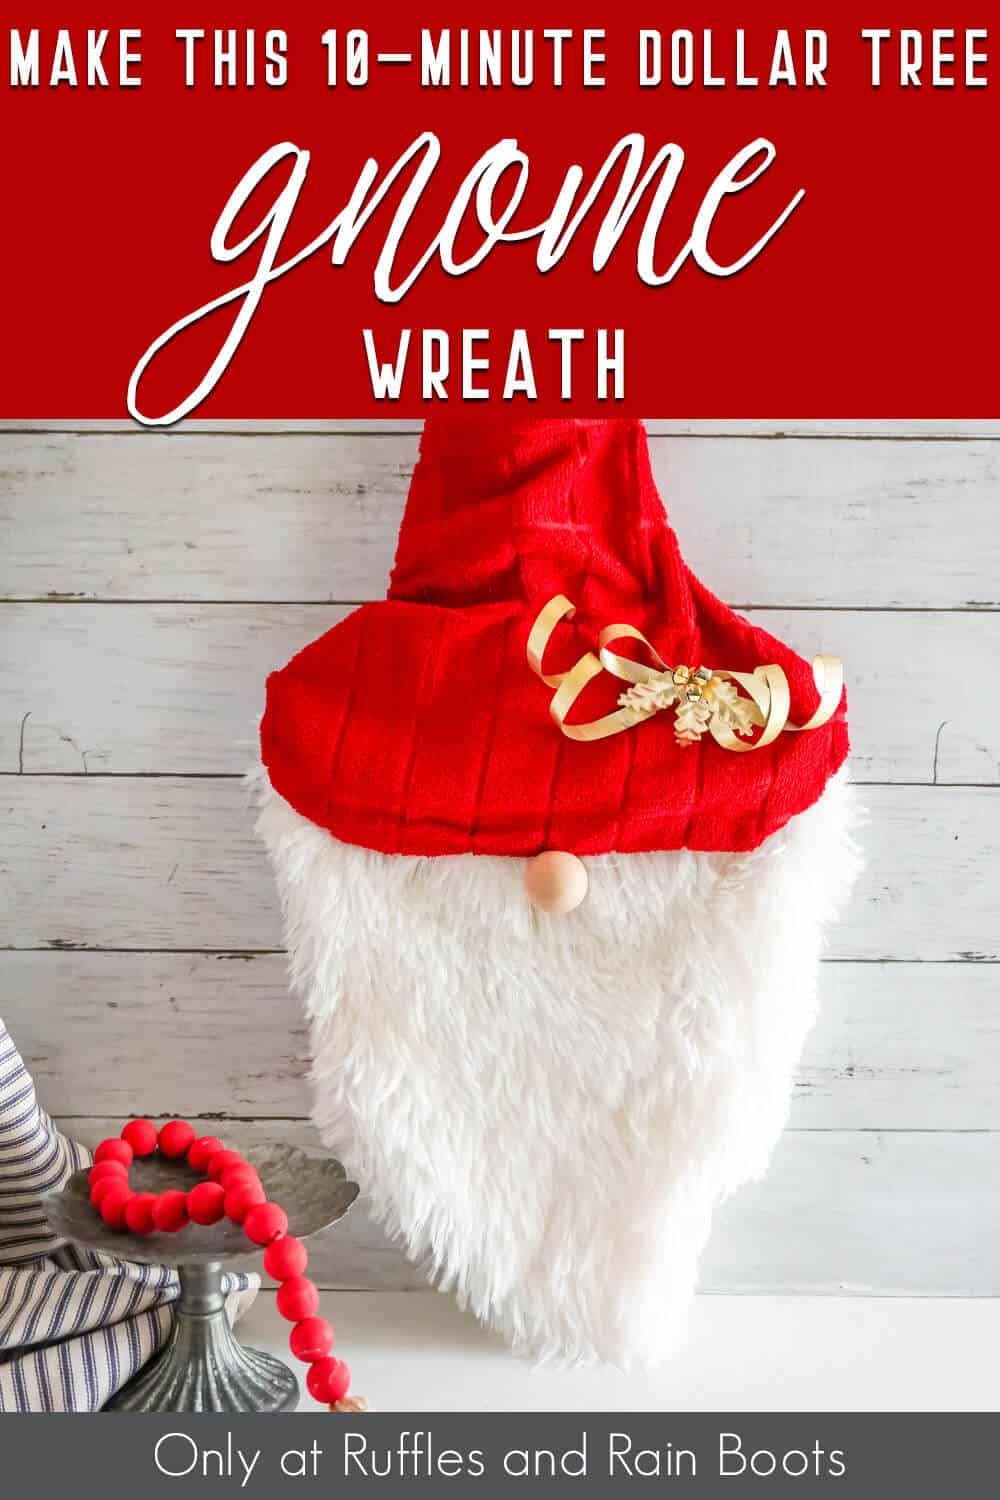 easy diy gnome wreath with text which reads make this 10-minute dollar tree gnome wreath